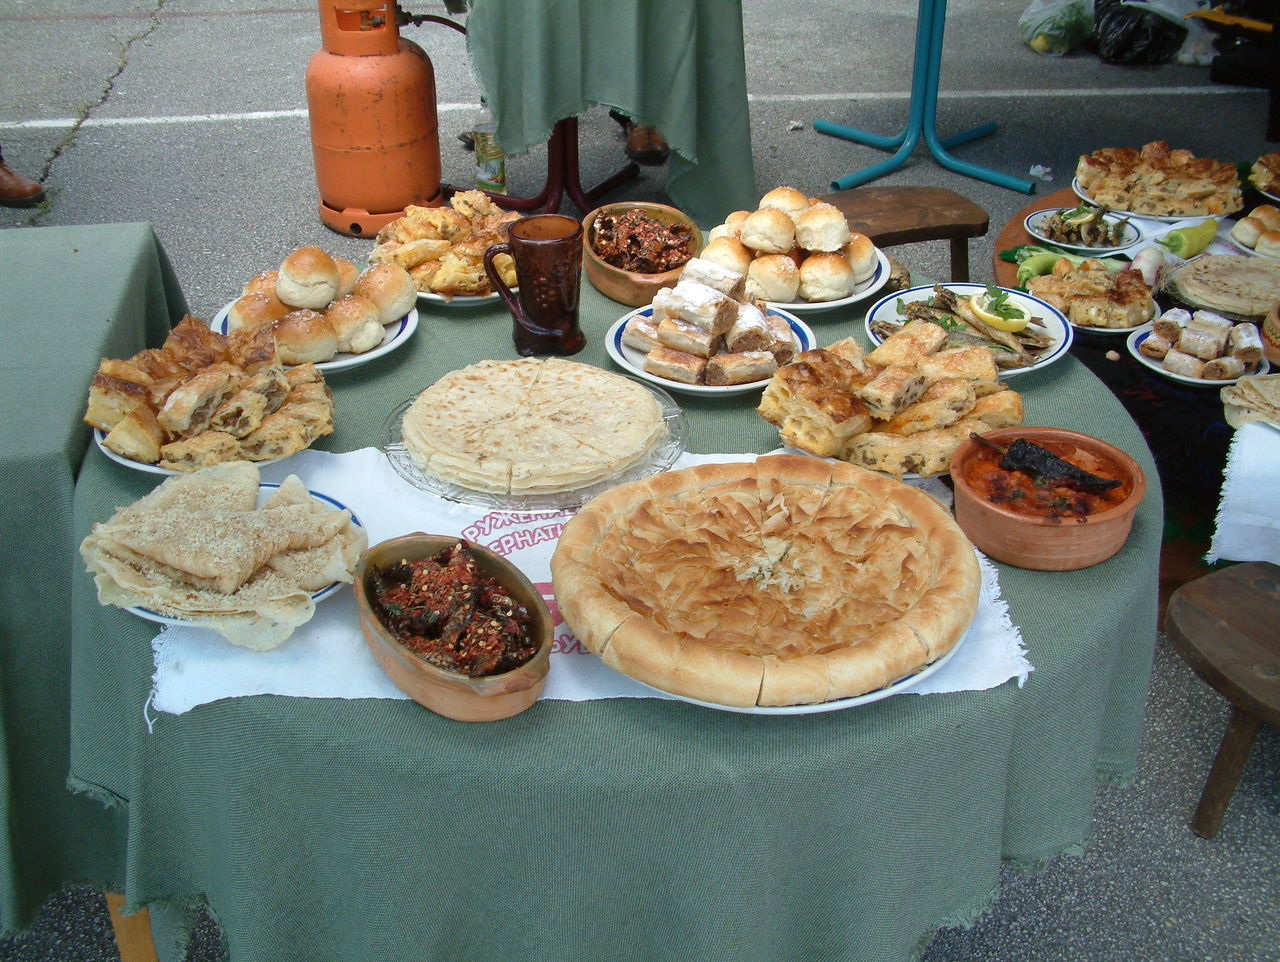 traditional food of macedonia Catering Service Cironka Day Food Freshness Gomleze Macedonia Macedonian Food No People Ohrid Pastry Pie Pitulitza Ready-to-eat Tavche Gravche Traditional Tzironka